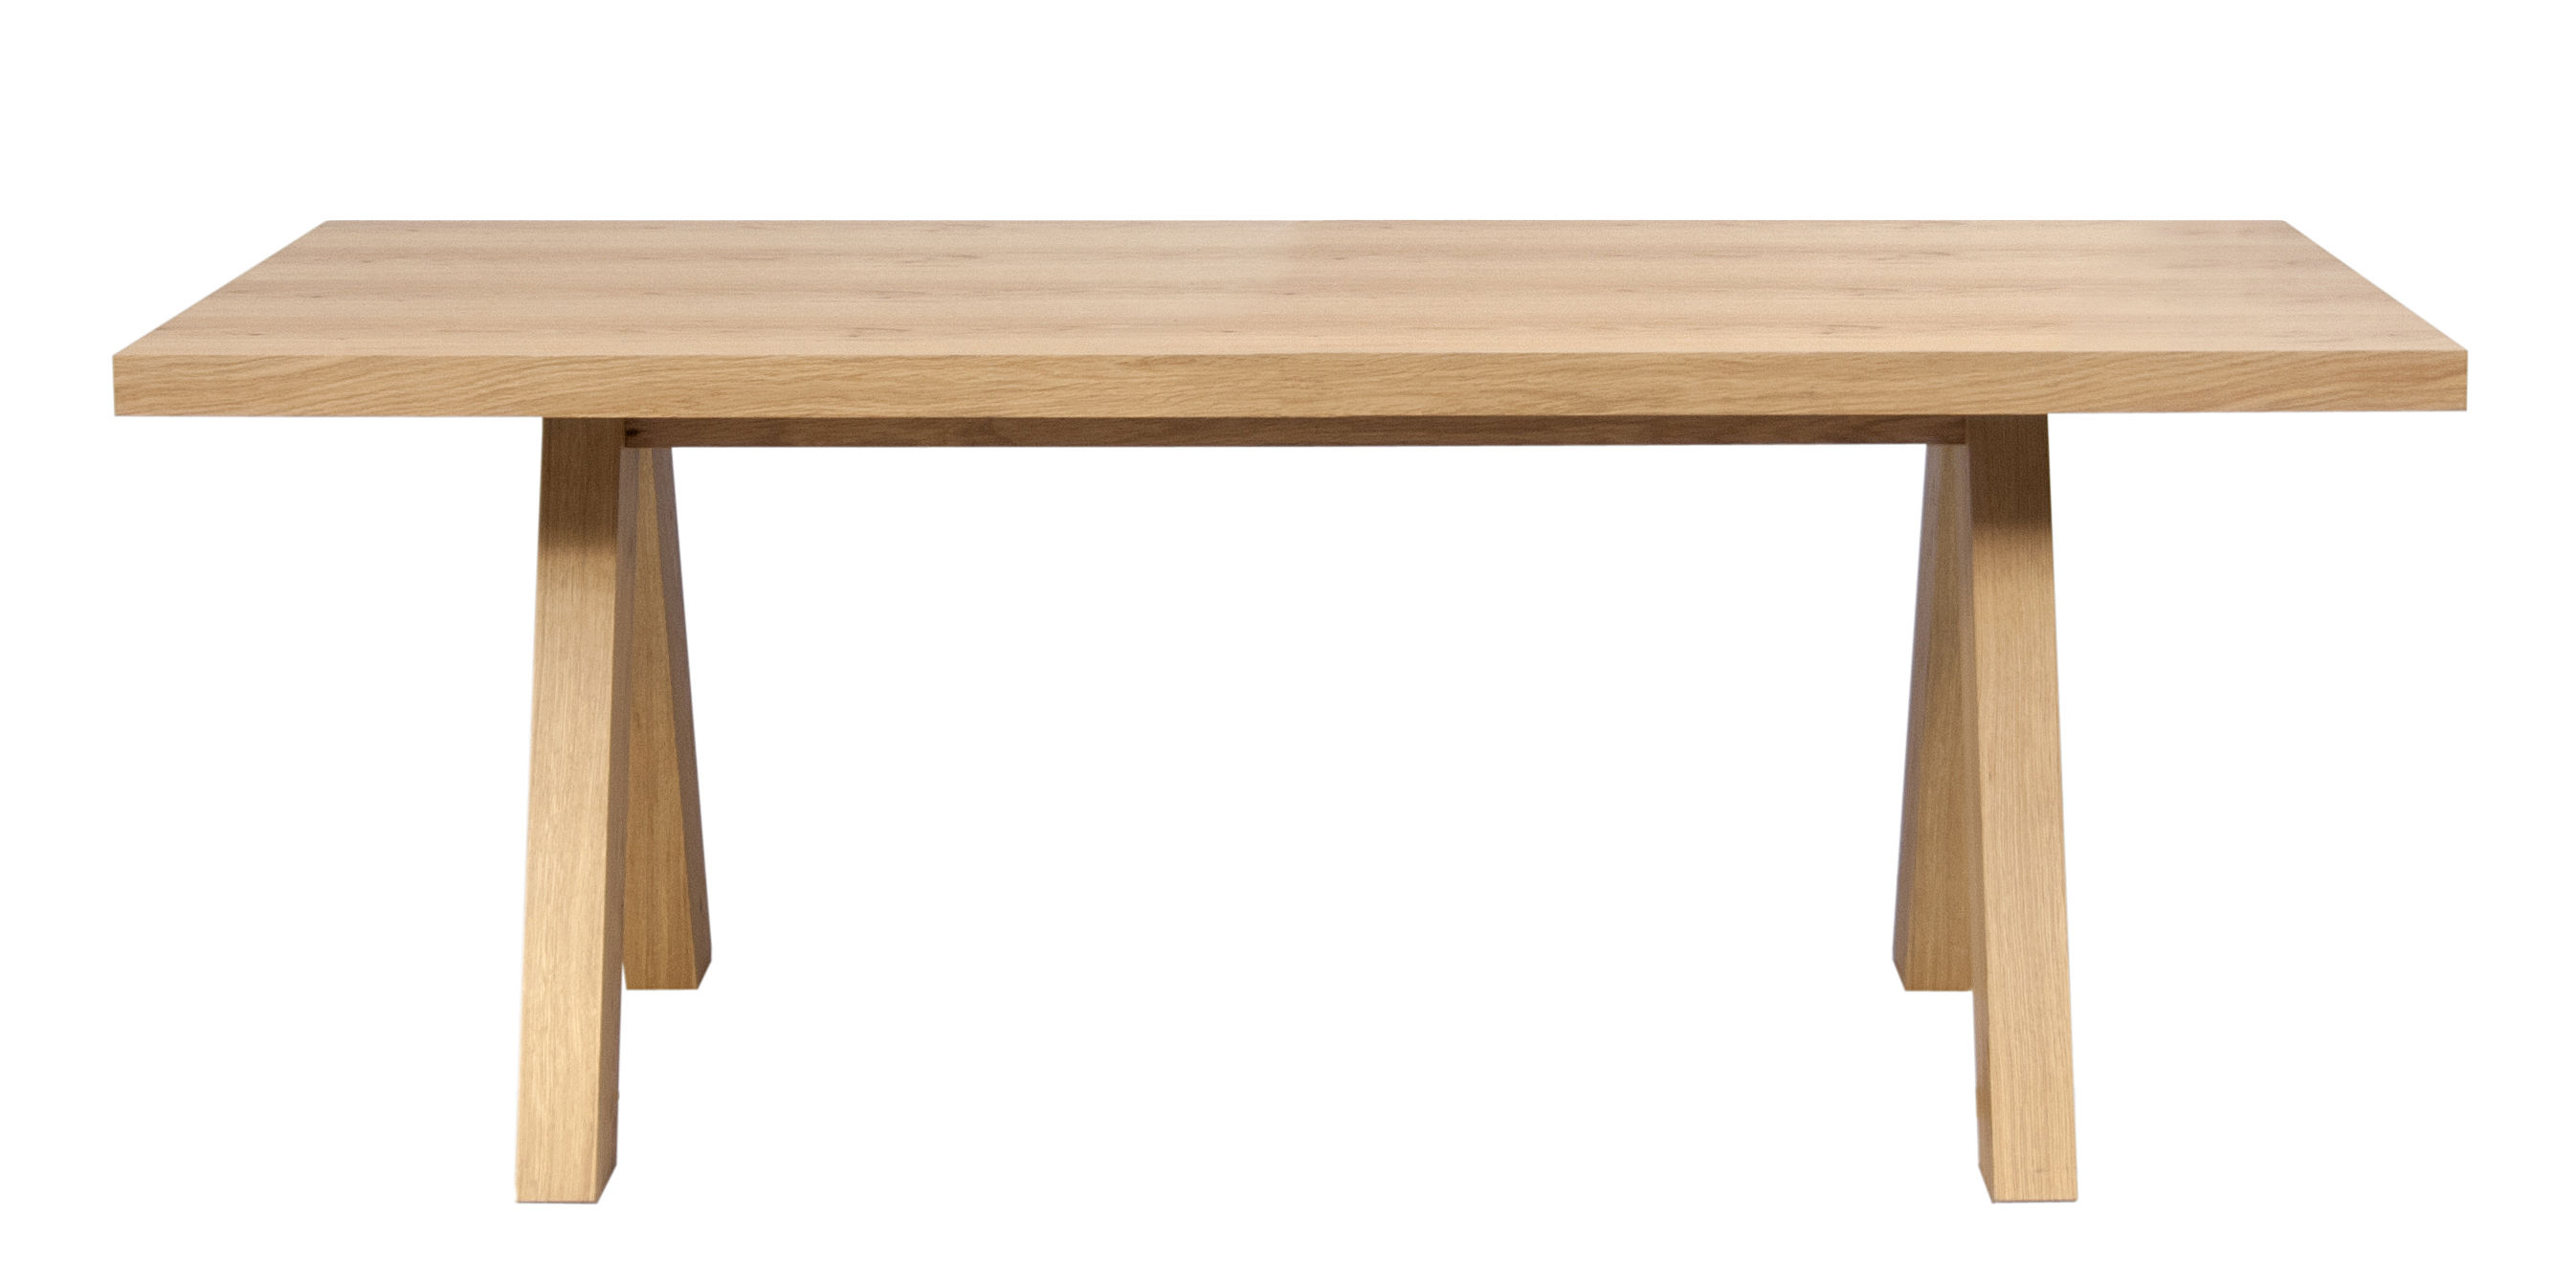 Oak table 200 x 100 cm oak by pop up home for Table 200x100